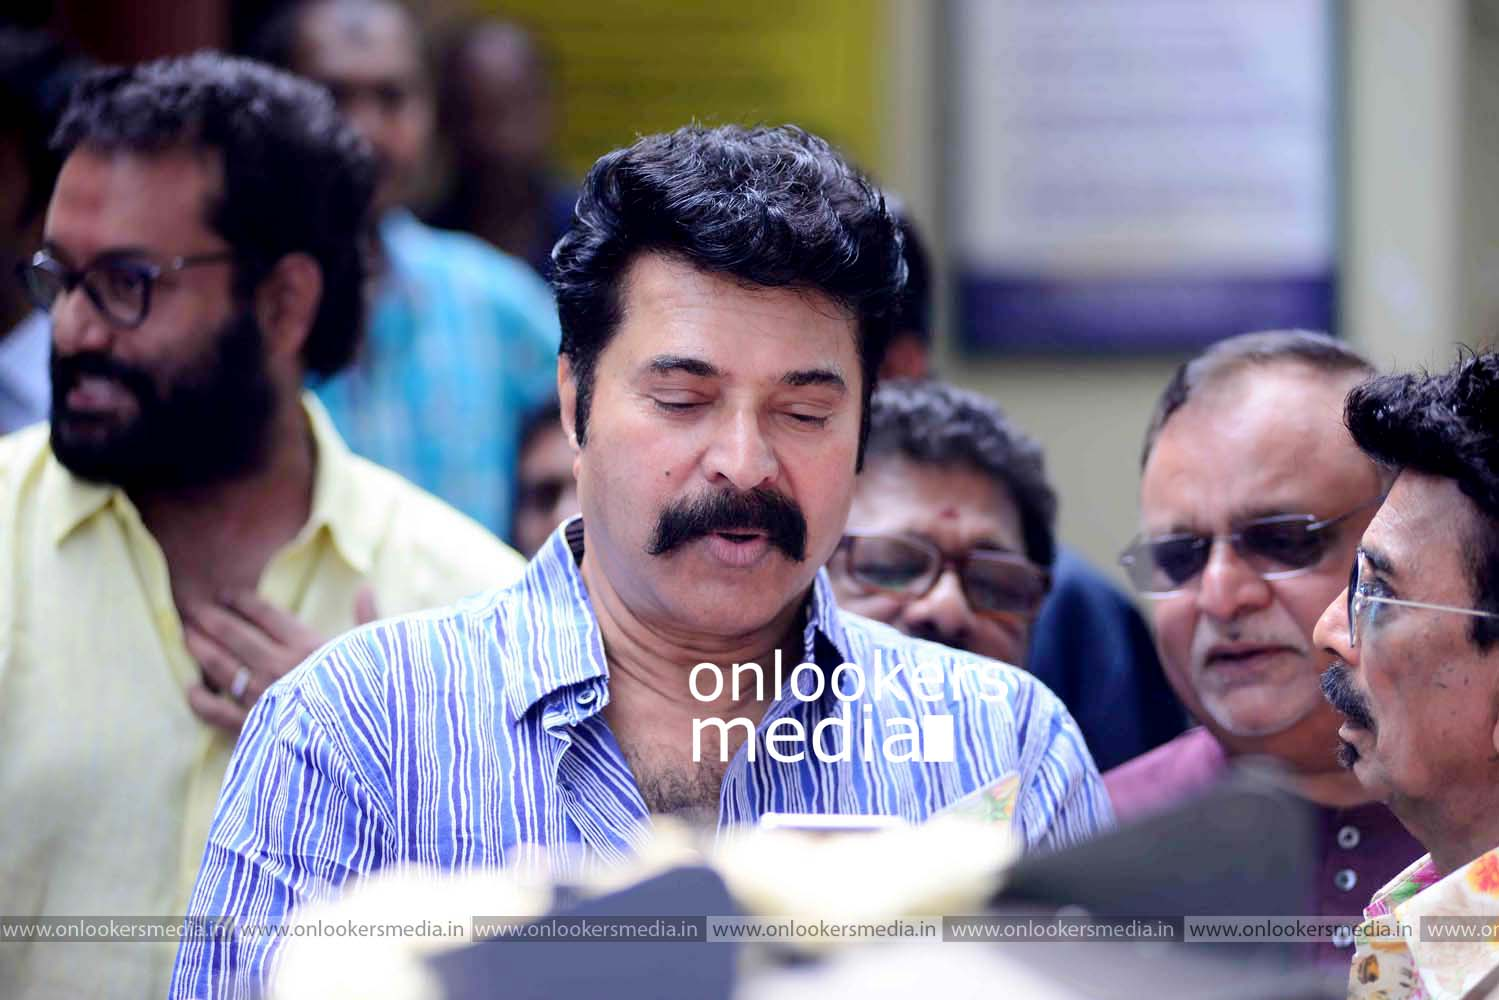 http://onlookersmedia.in/wp-content/uploads/2016/11/Puthan-Panam-Pooja-Stills-Photos-Mammootty-Ranjith-19.jpg